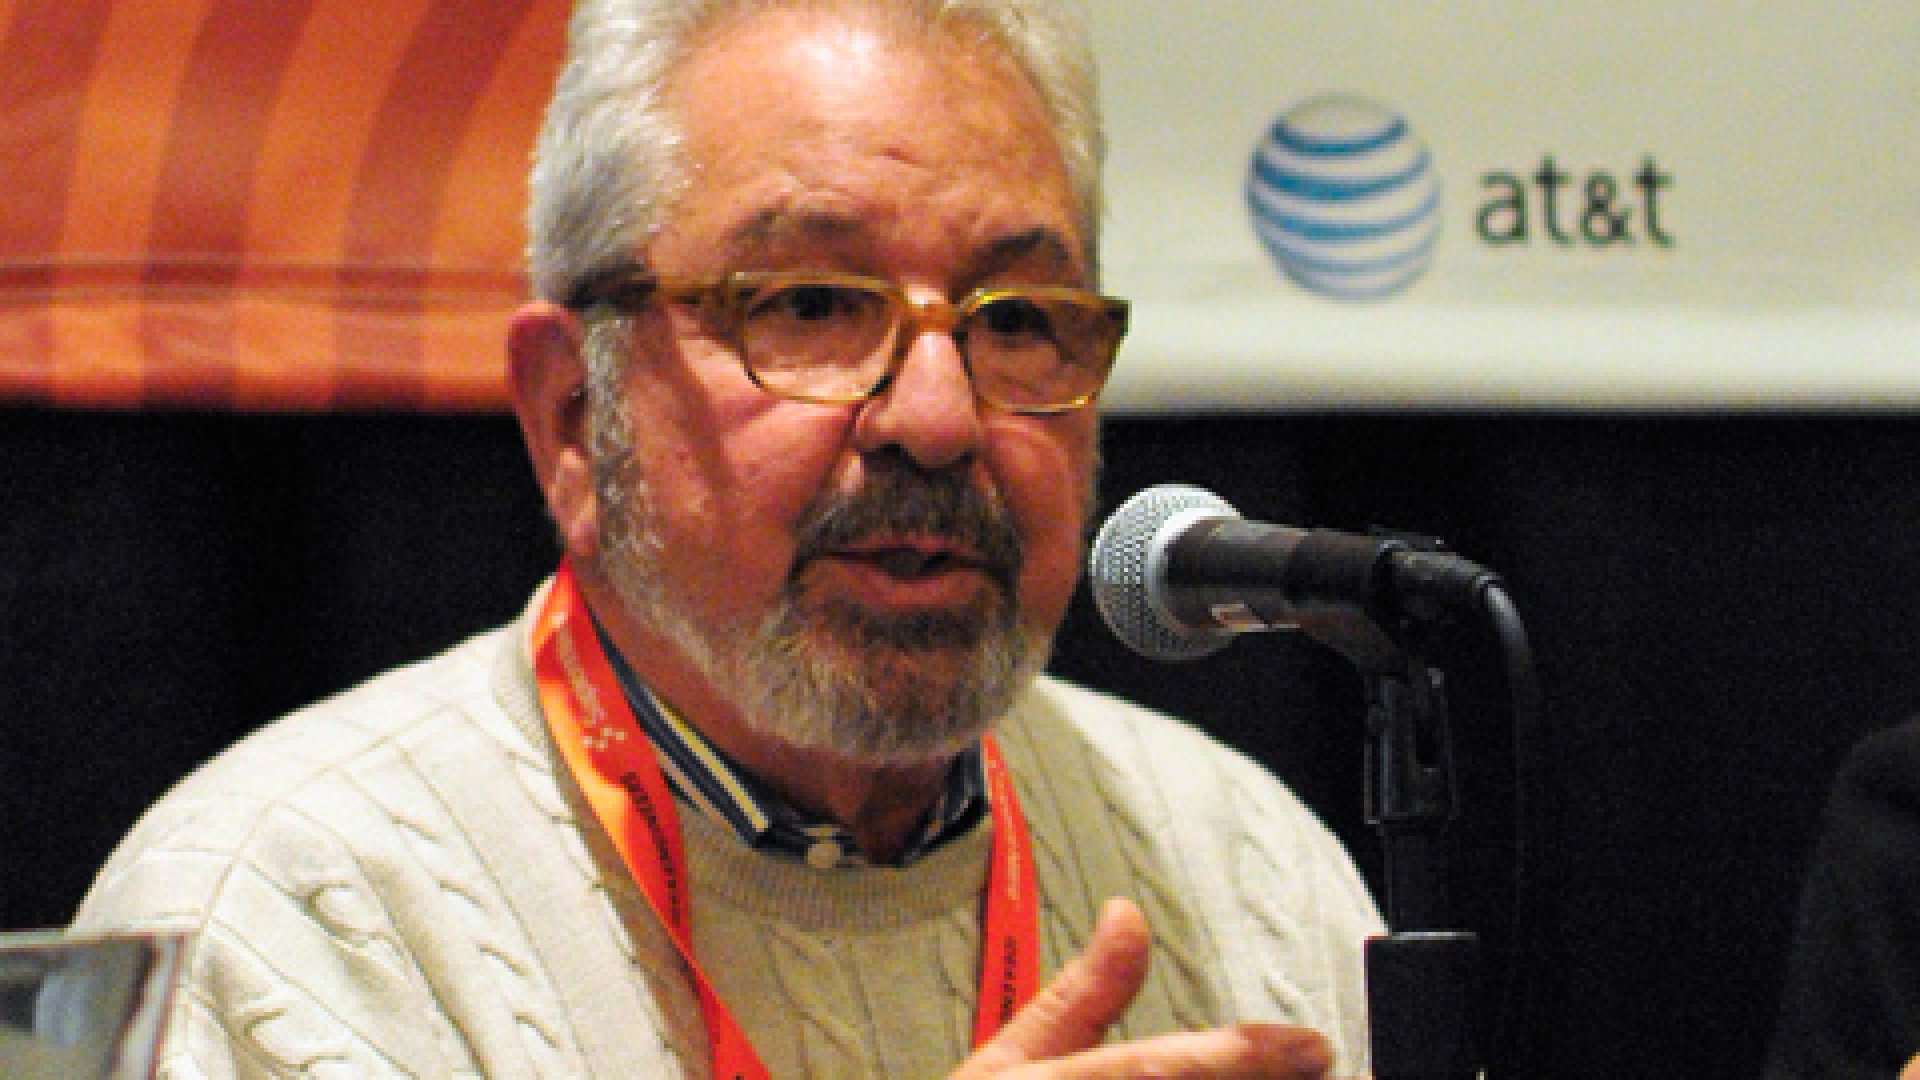 """TV personality Bob Vila speaks onstage at """"This New House: Featuring Bob Vila,"""" during the 2012 SXSW Interactive festival."""